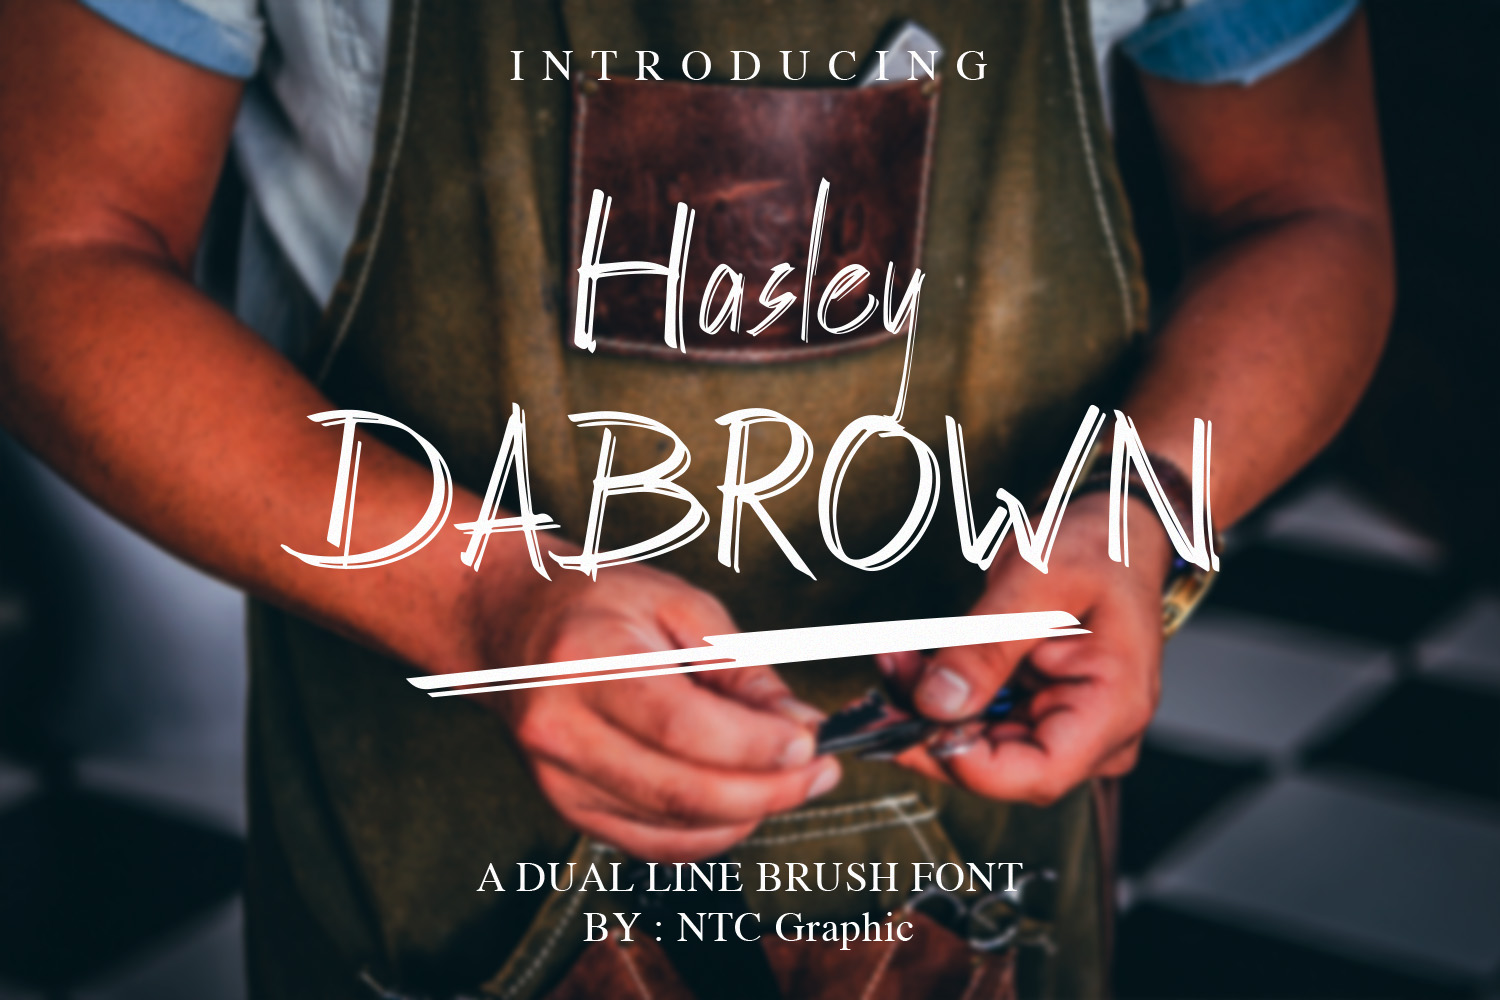 Hasley Dabrown Dual line Handbrush Font example image 1